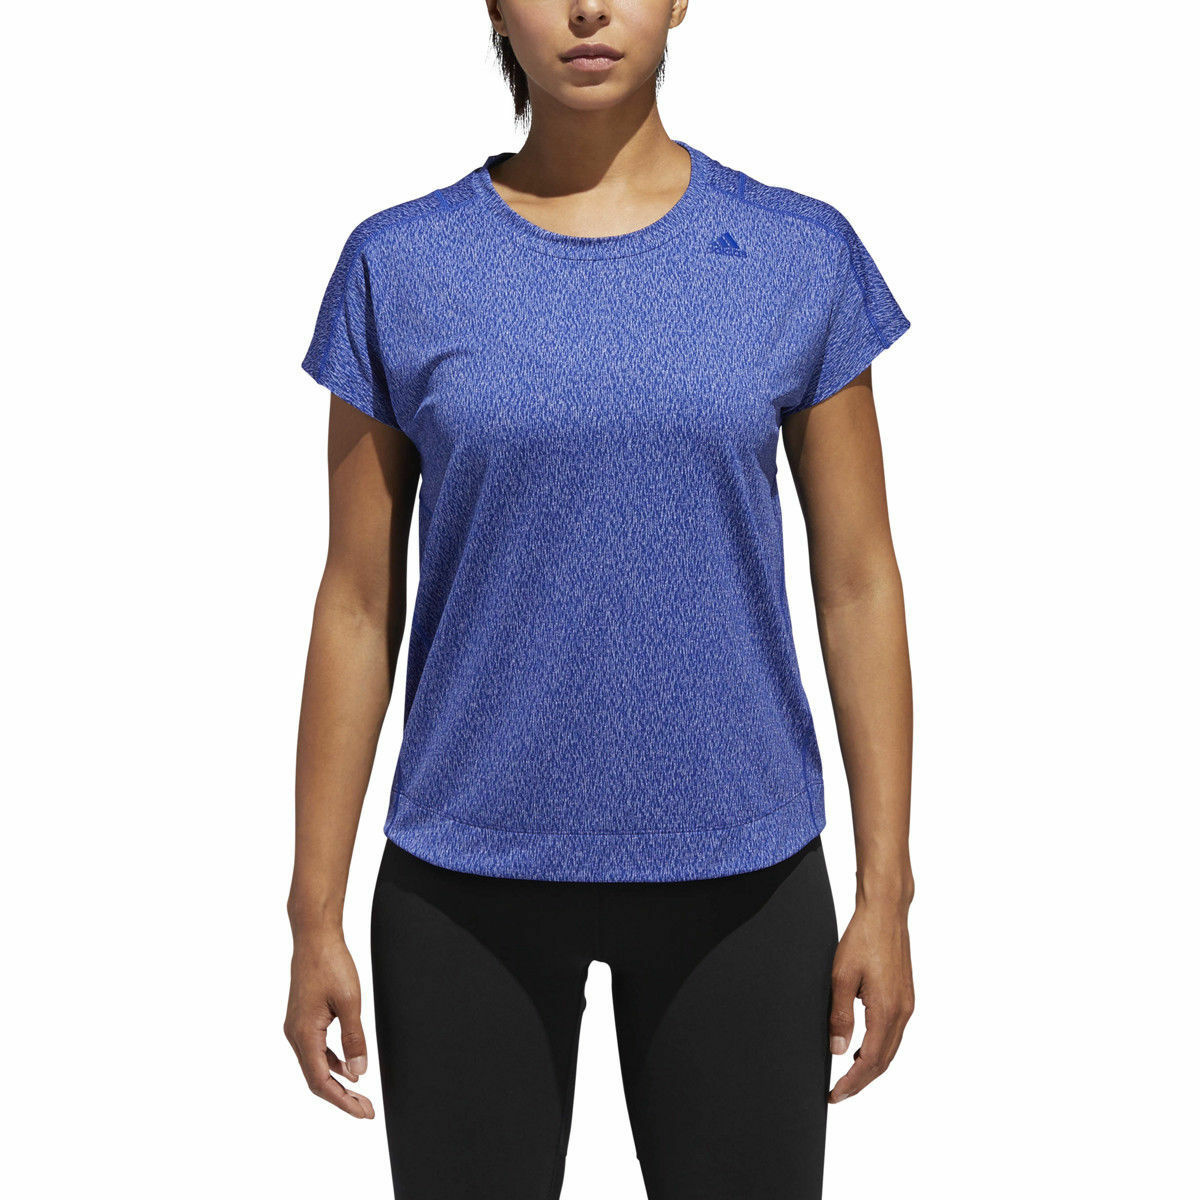 ADIDAS Climalite CZ3121 Jacquard TEE Shirt TOP Real Mystery bluee ( M )